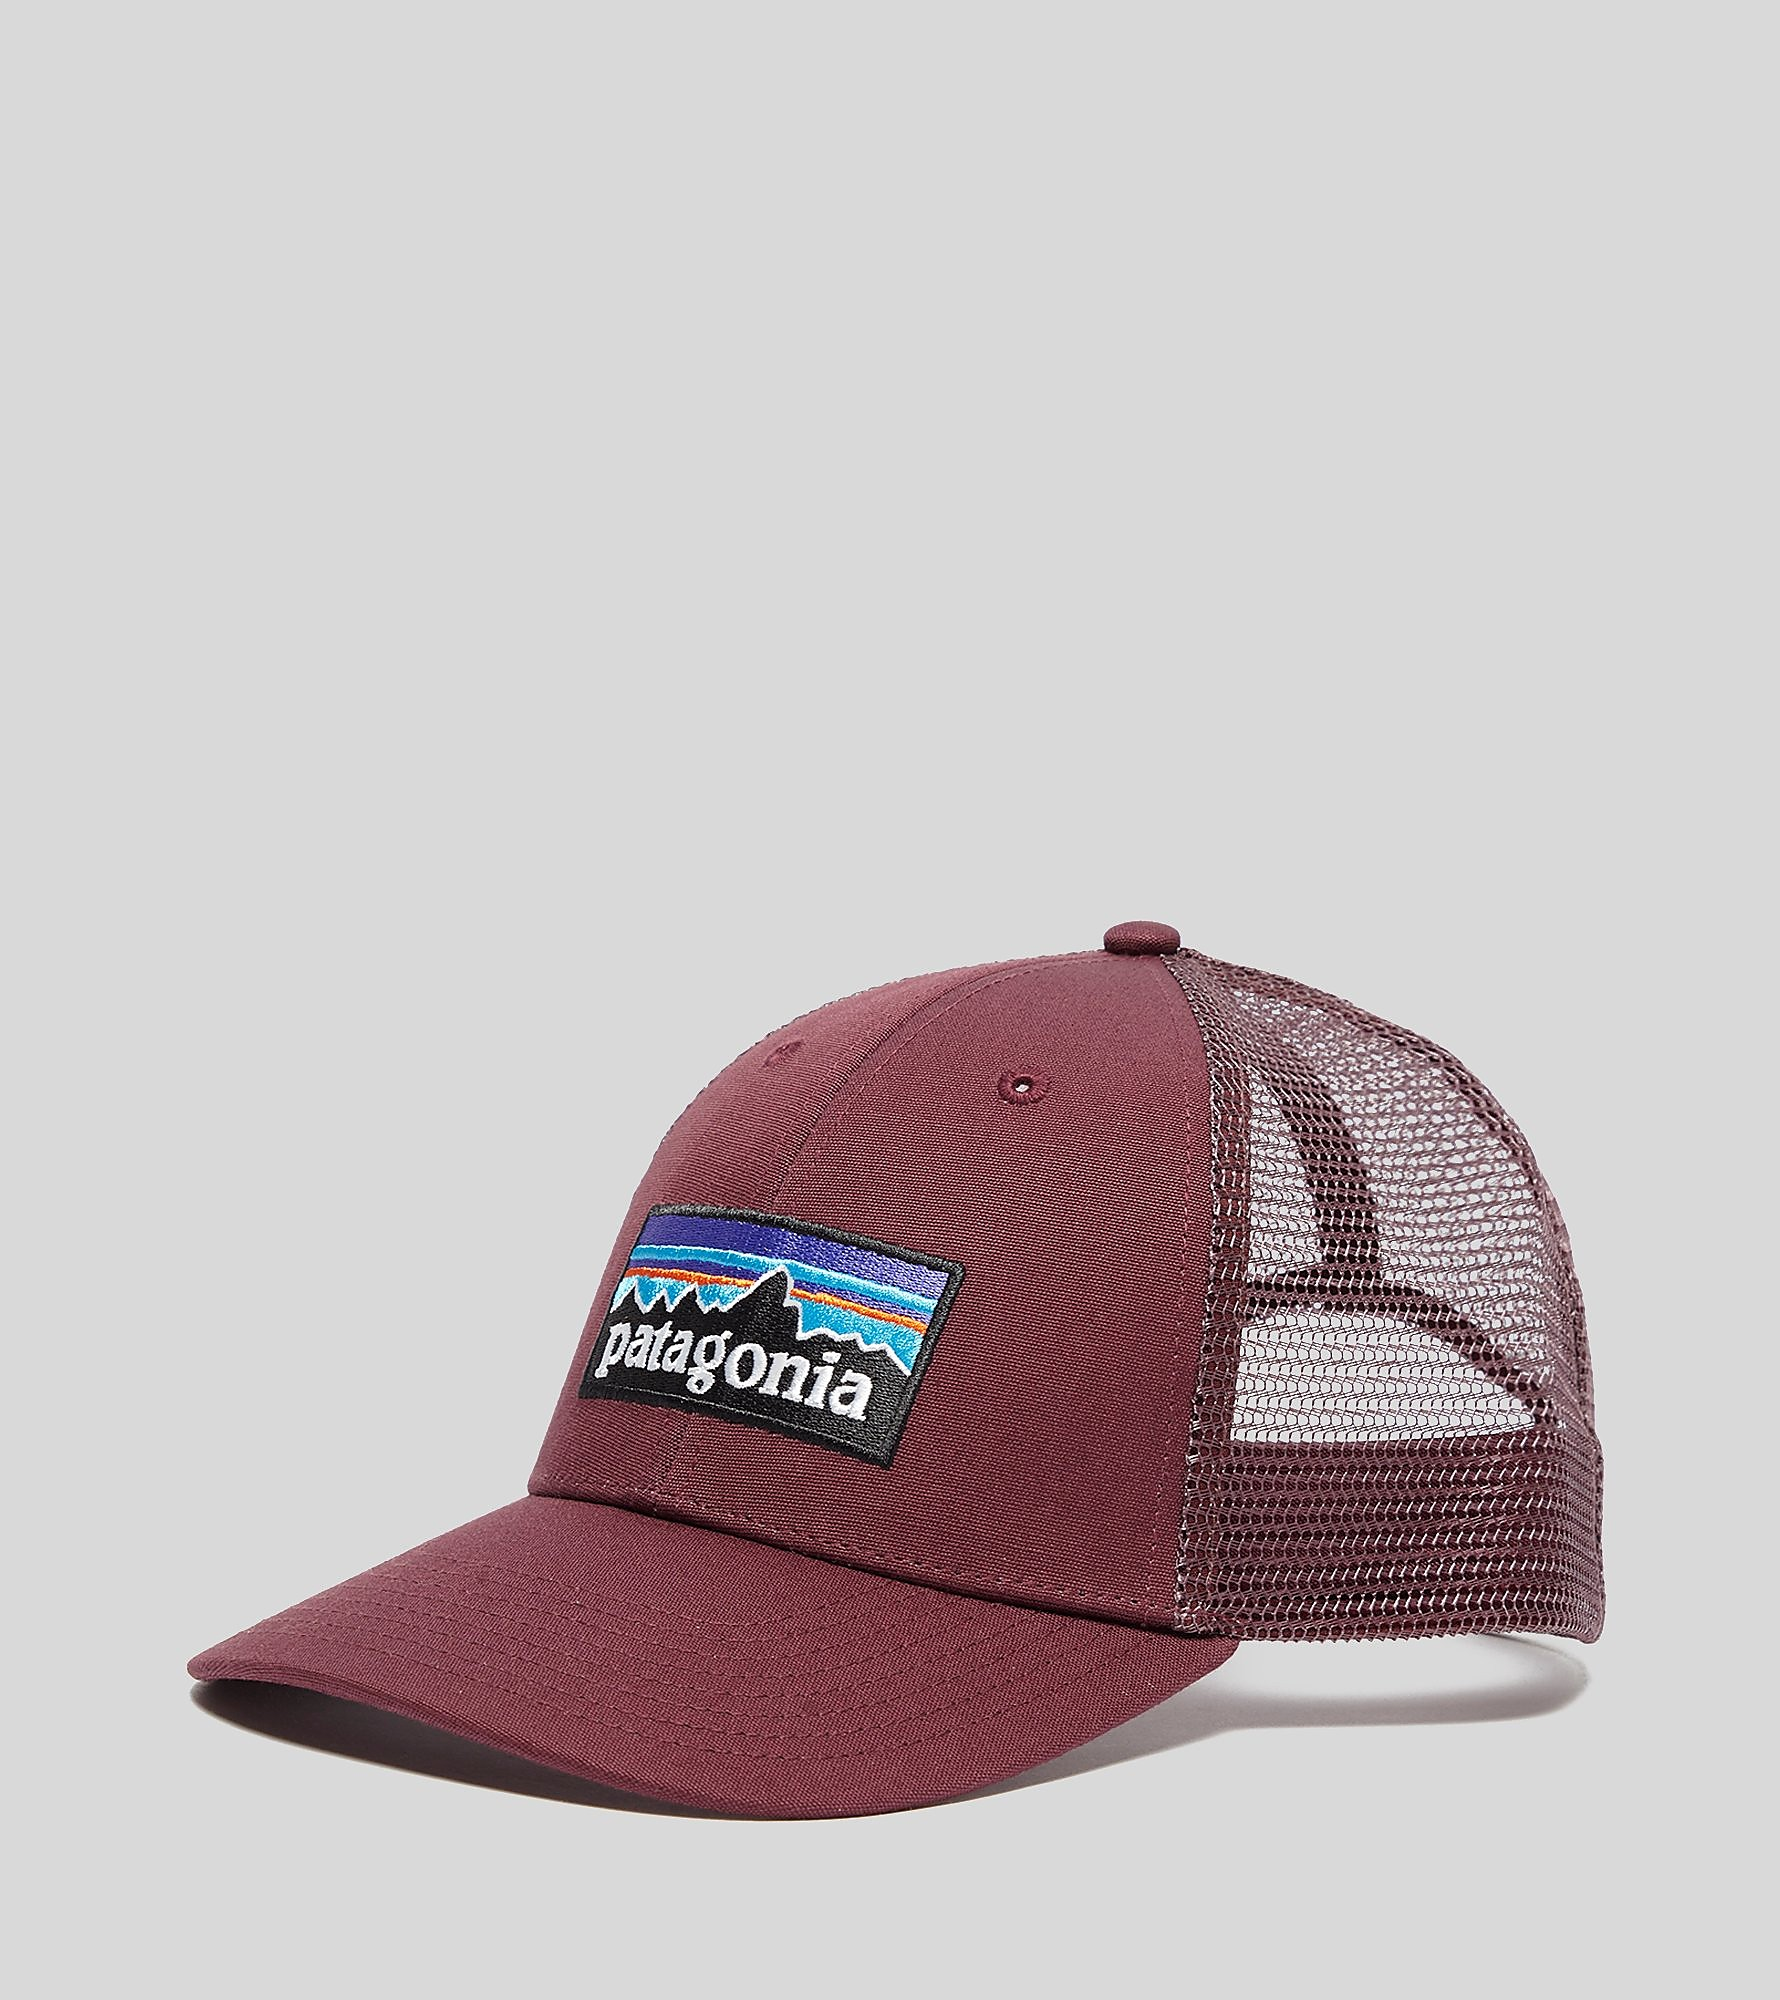 Patagonia P-6 LoPro Trucker Cap, Rood